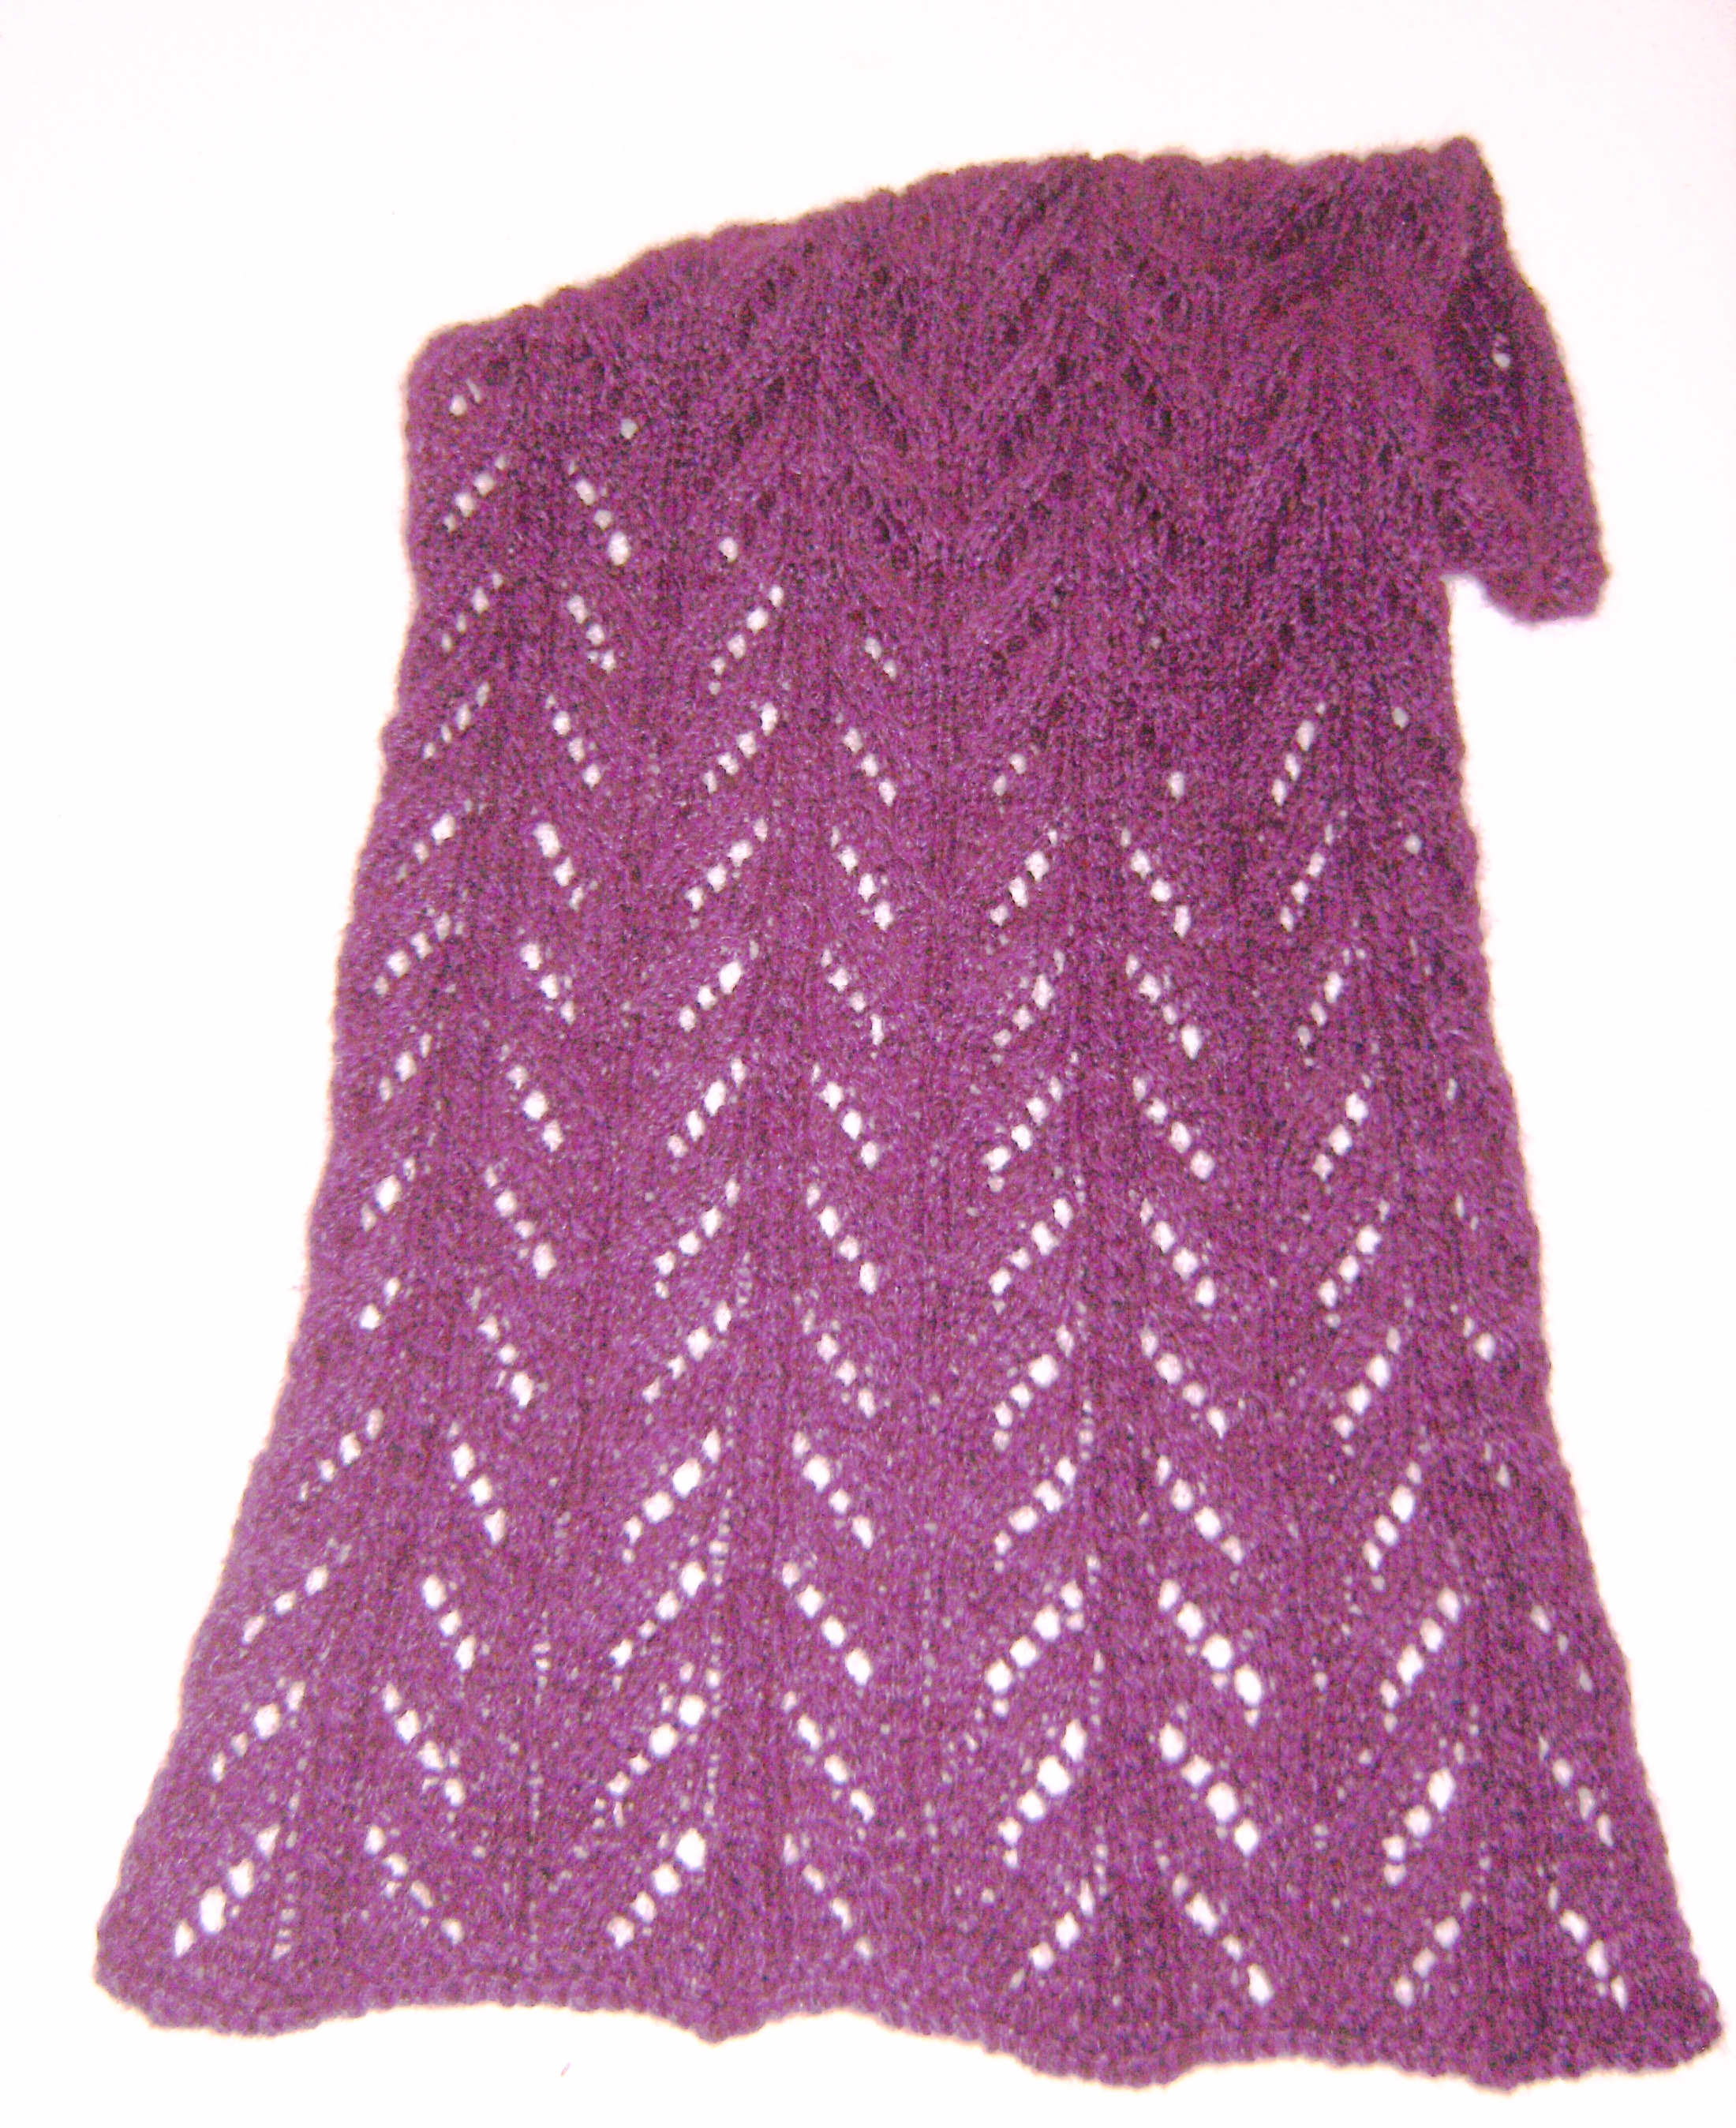 Patterns For Crochet : ... Crochet Patterns For Beginners pictures Crochet Scarf Free Patterns